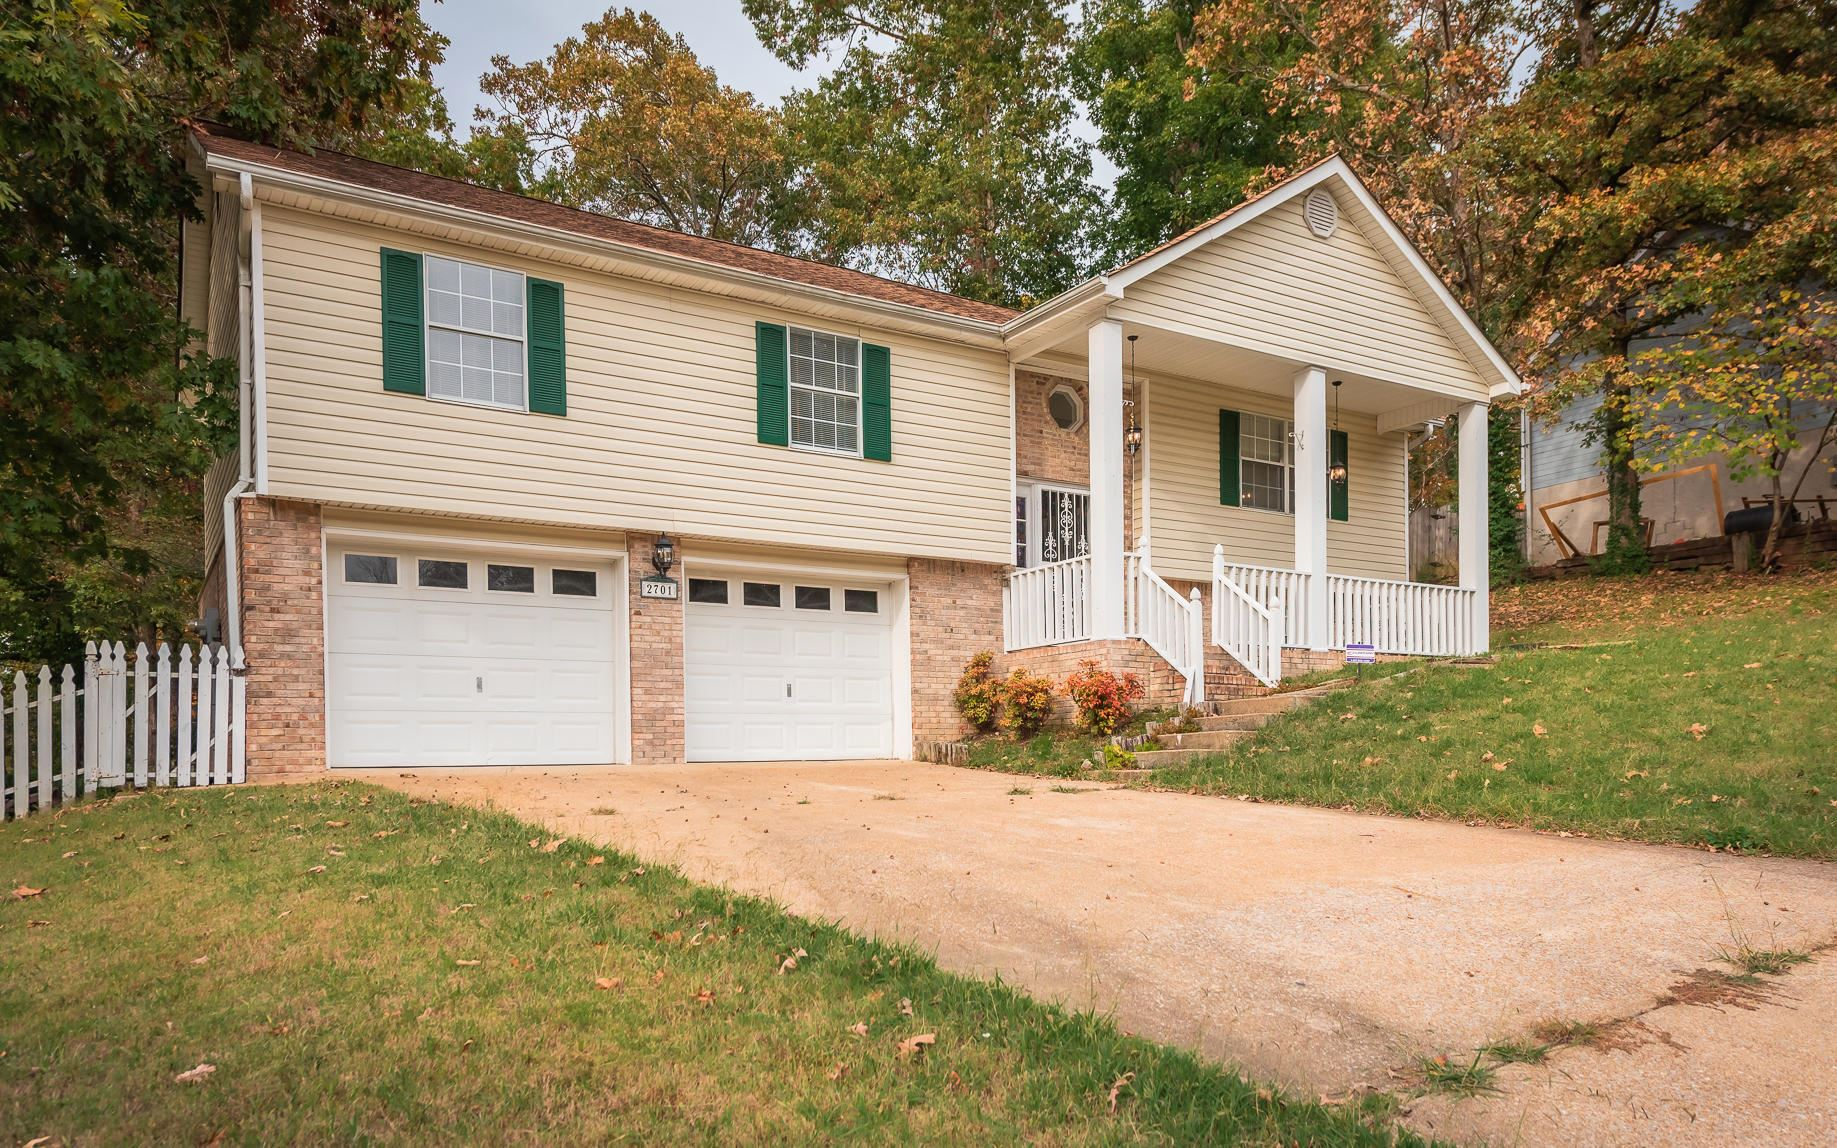 2701 Autumn Chase Dr, Chattanooga, TN 37421 - #: 1312956